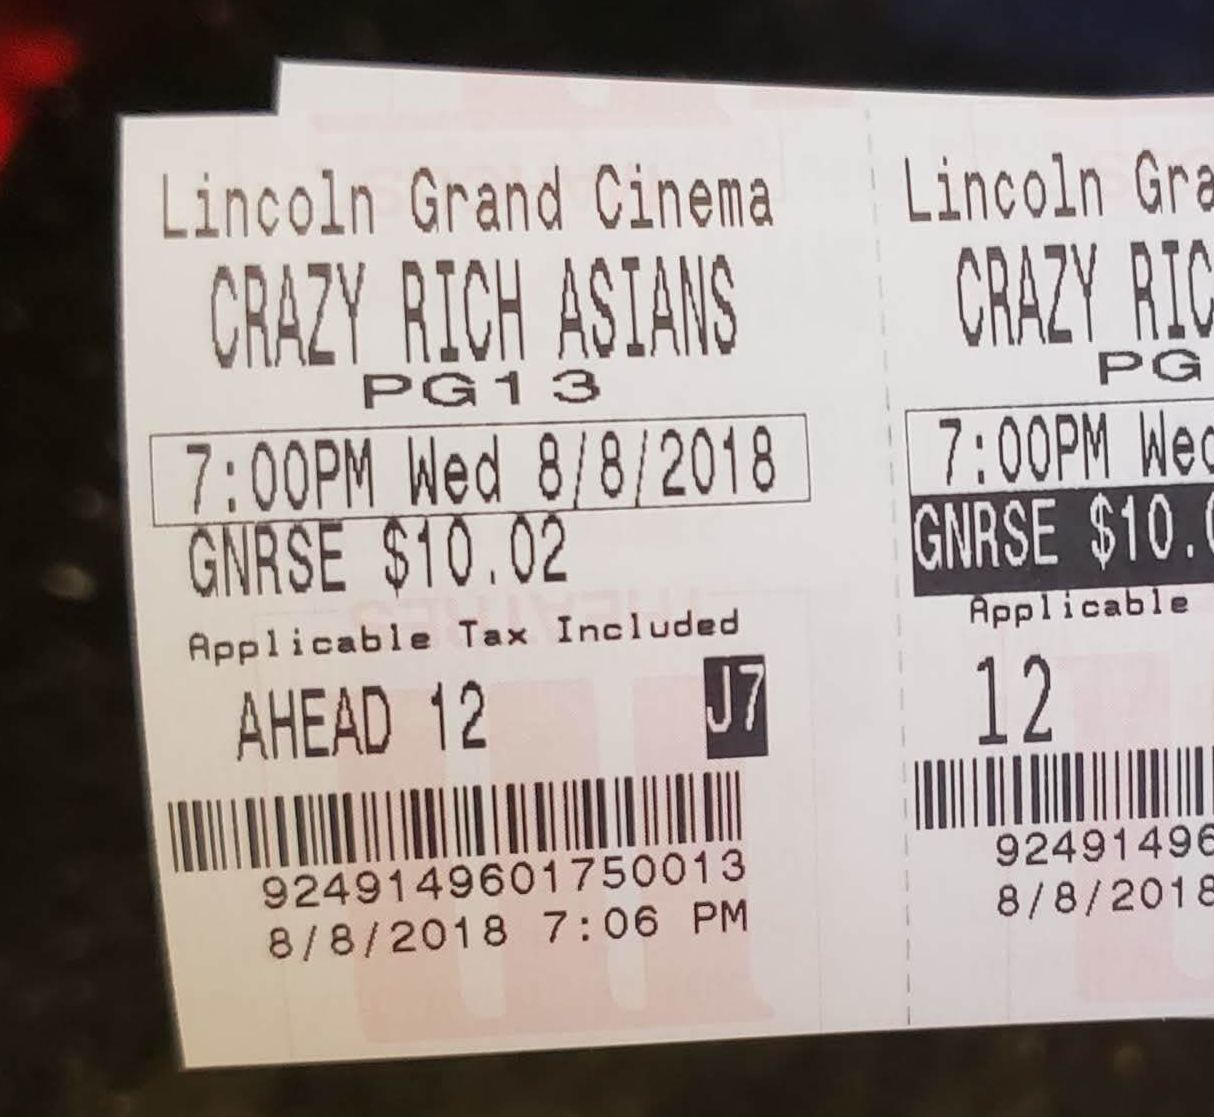 My ticket for the advanced screening of  Crazy Rich Asians.